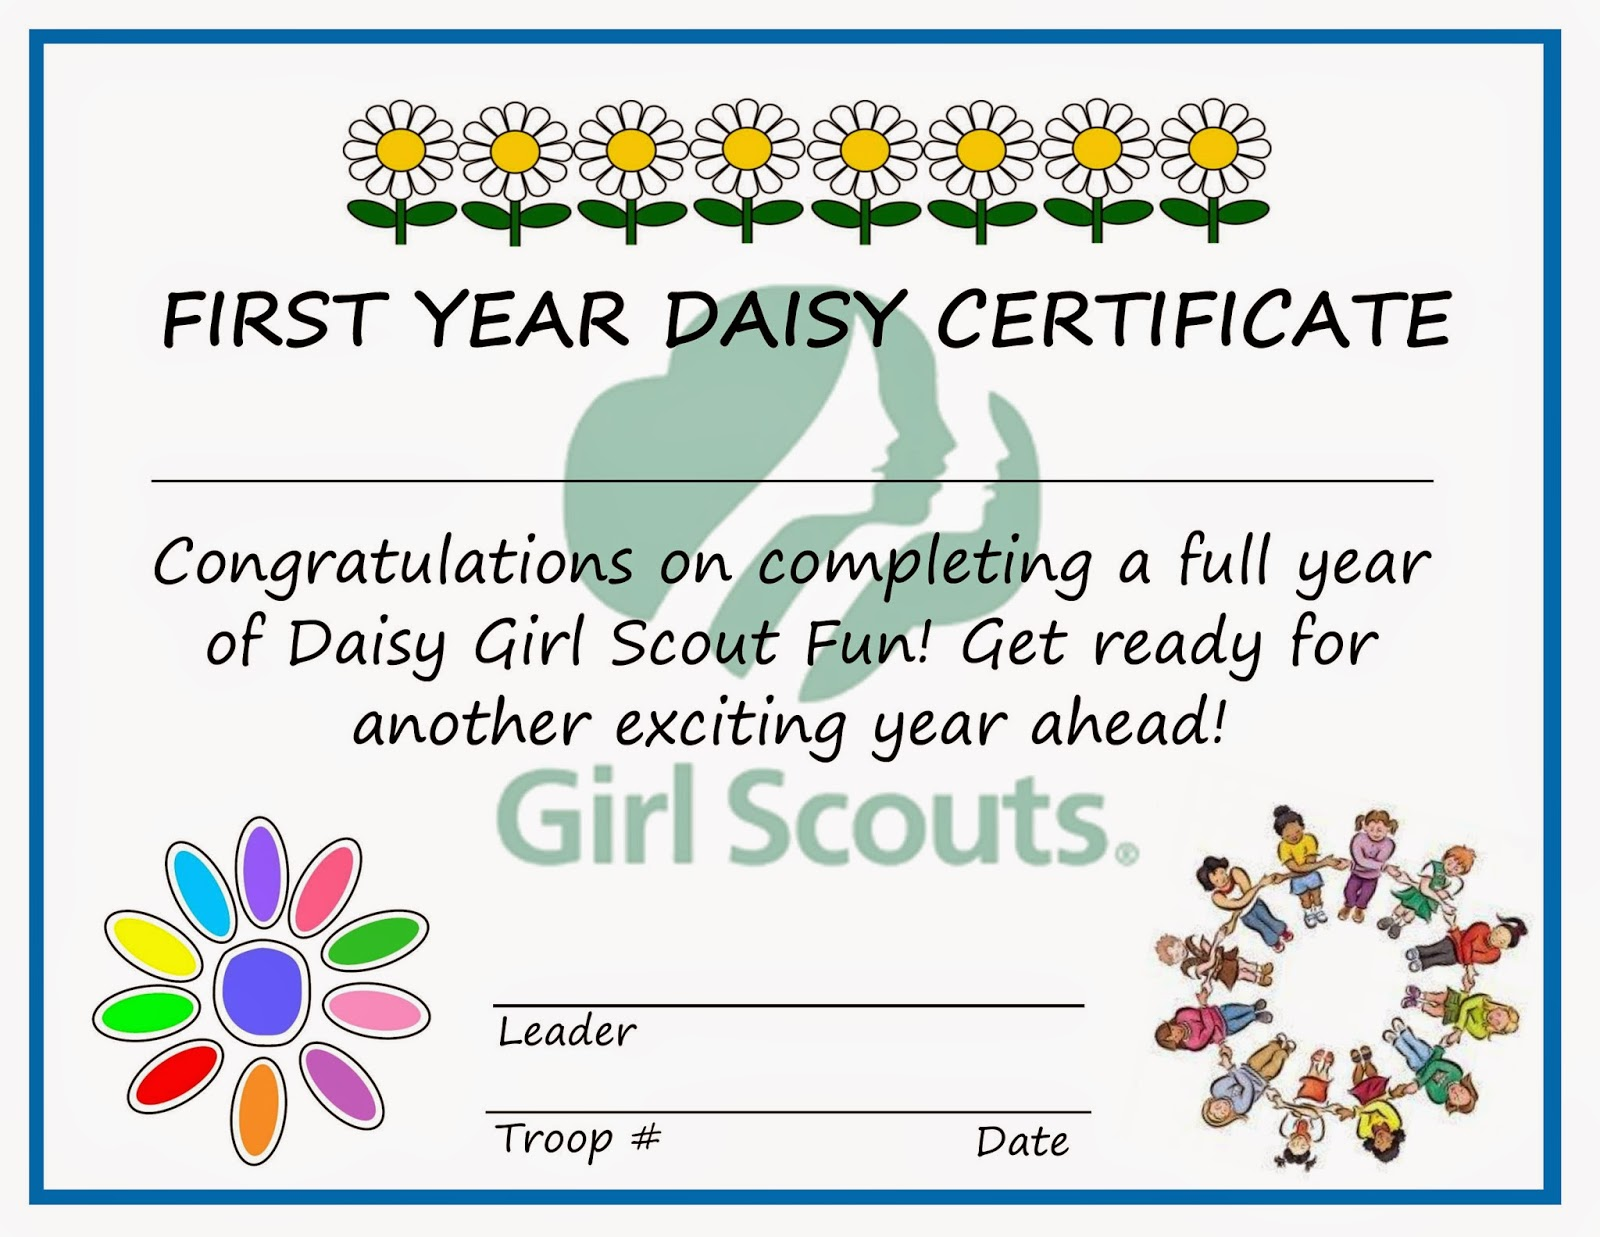 photograph relating to Girl Scout Certificates Printable Free named Female Scouts Daisy Welcome Certification Designs We Recognize How In the direction of